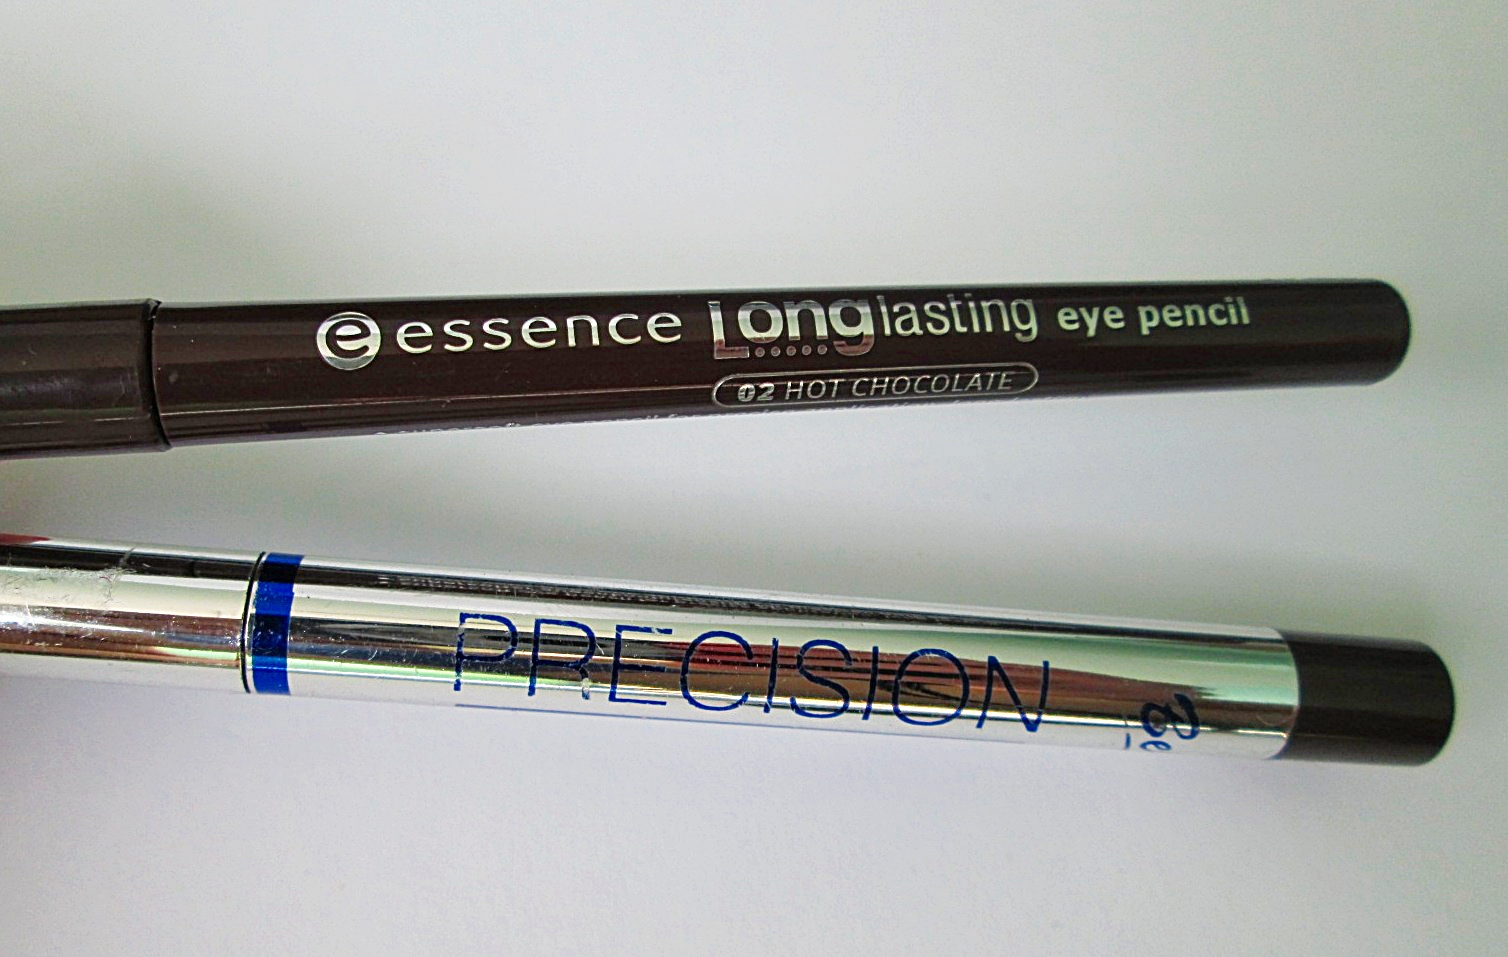 Bell Precision Stay on eye liner nr 08 i Essence Longlasting eye pencil nr 02 Hot Chocolate